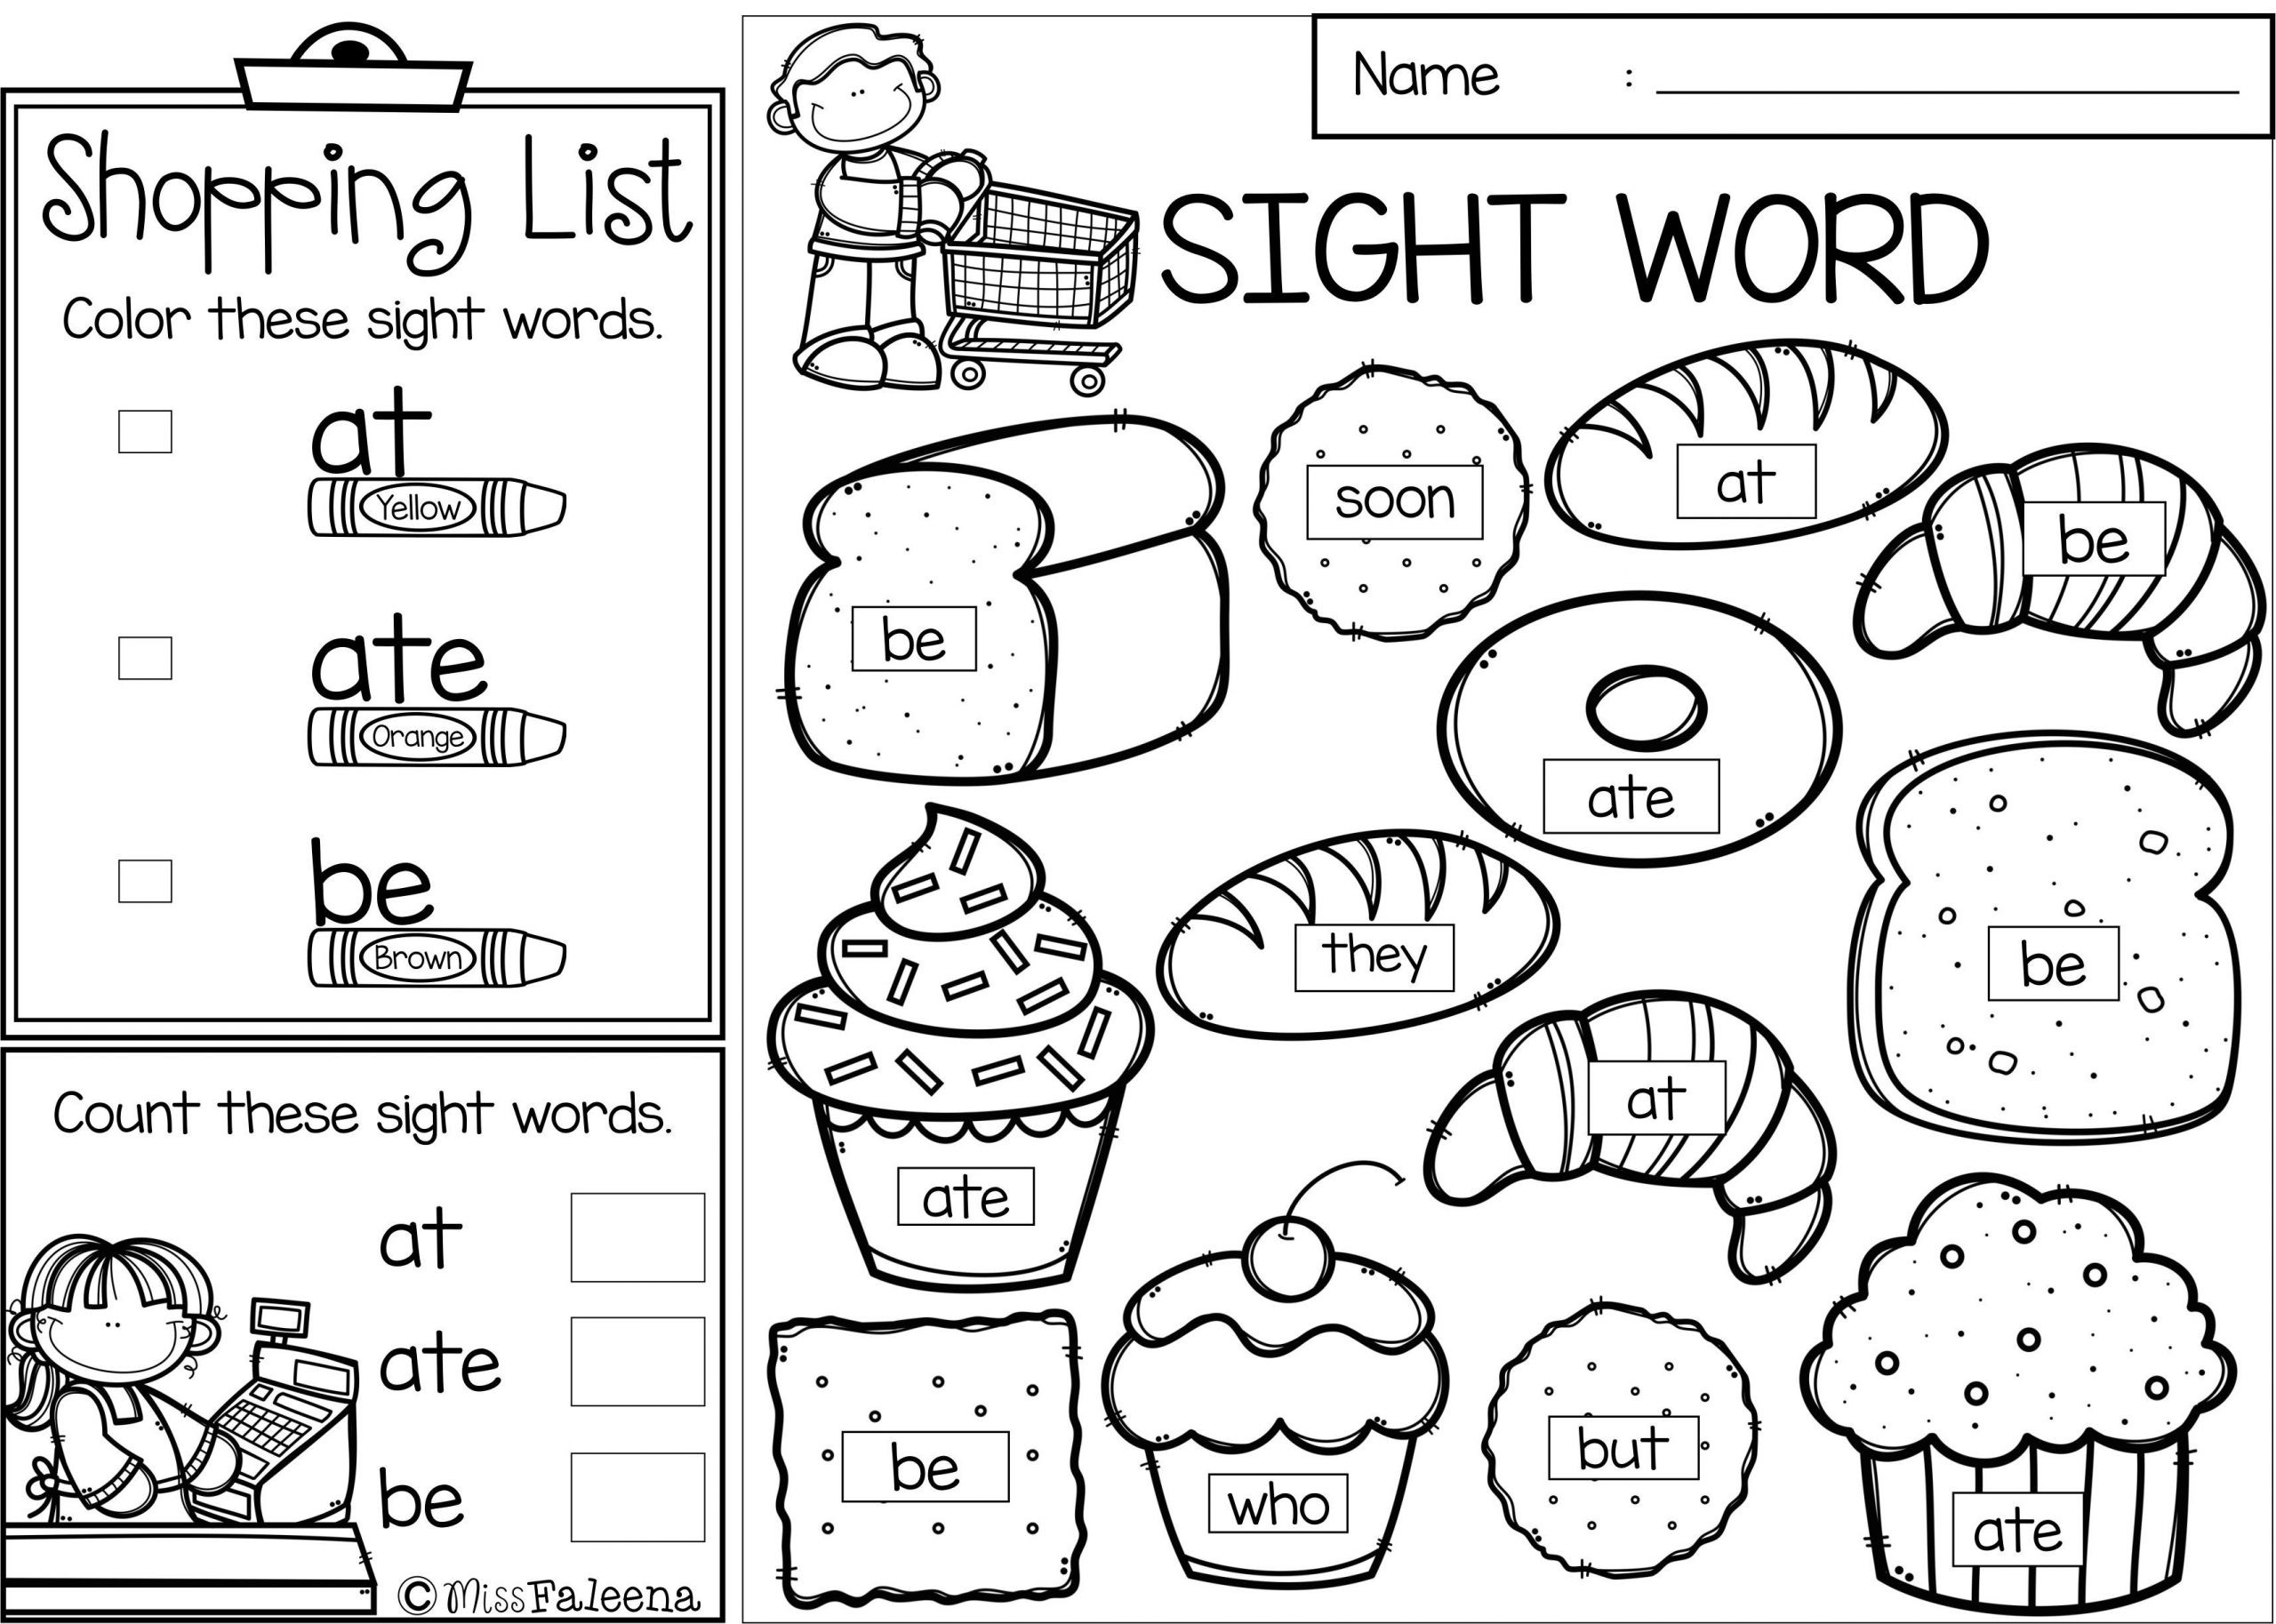 3rd Grade Sight Words Worksheets Coloring Sheet Free Sight Word Pages Picture Ideas Book